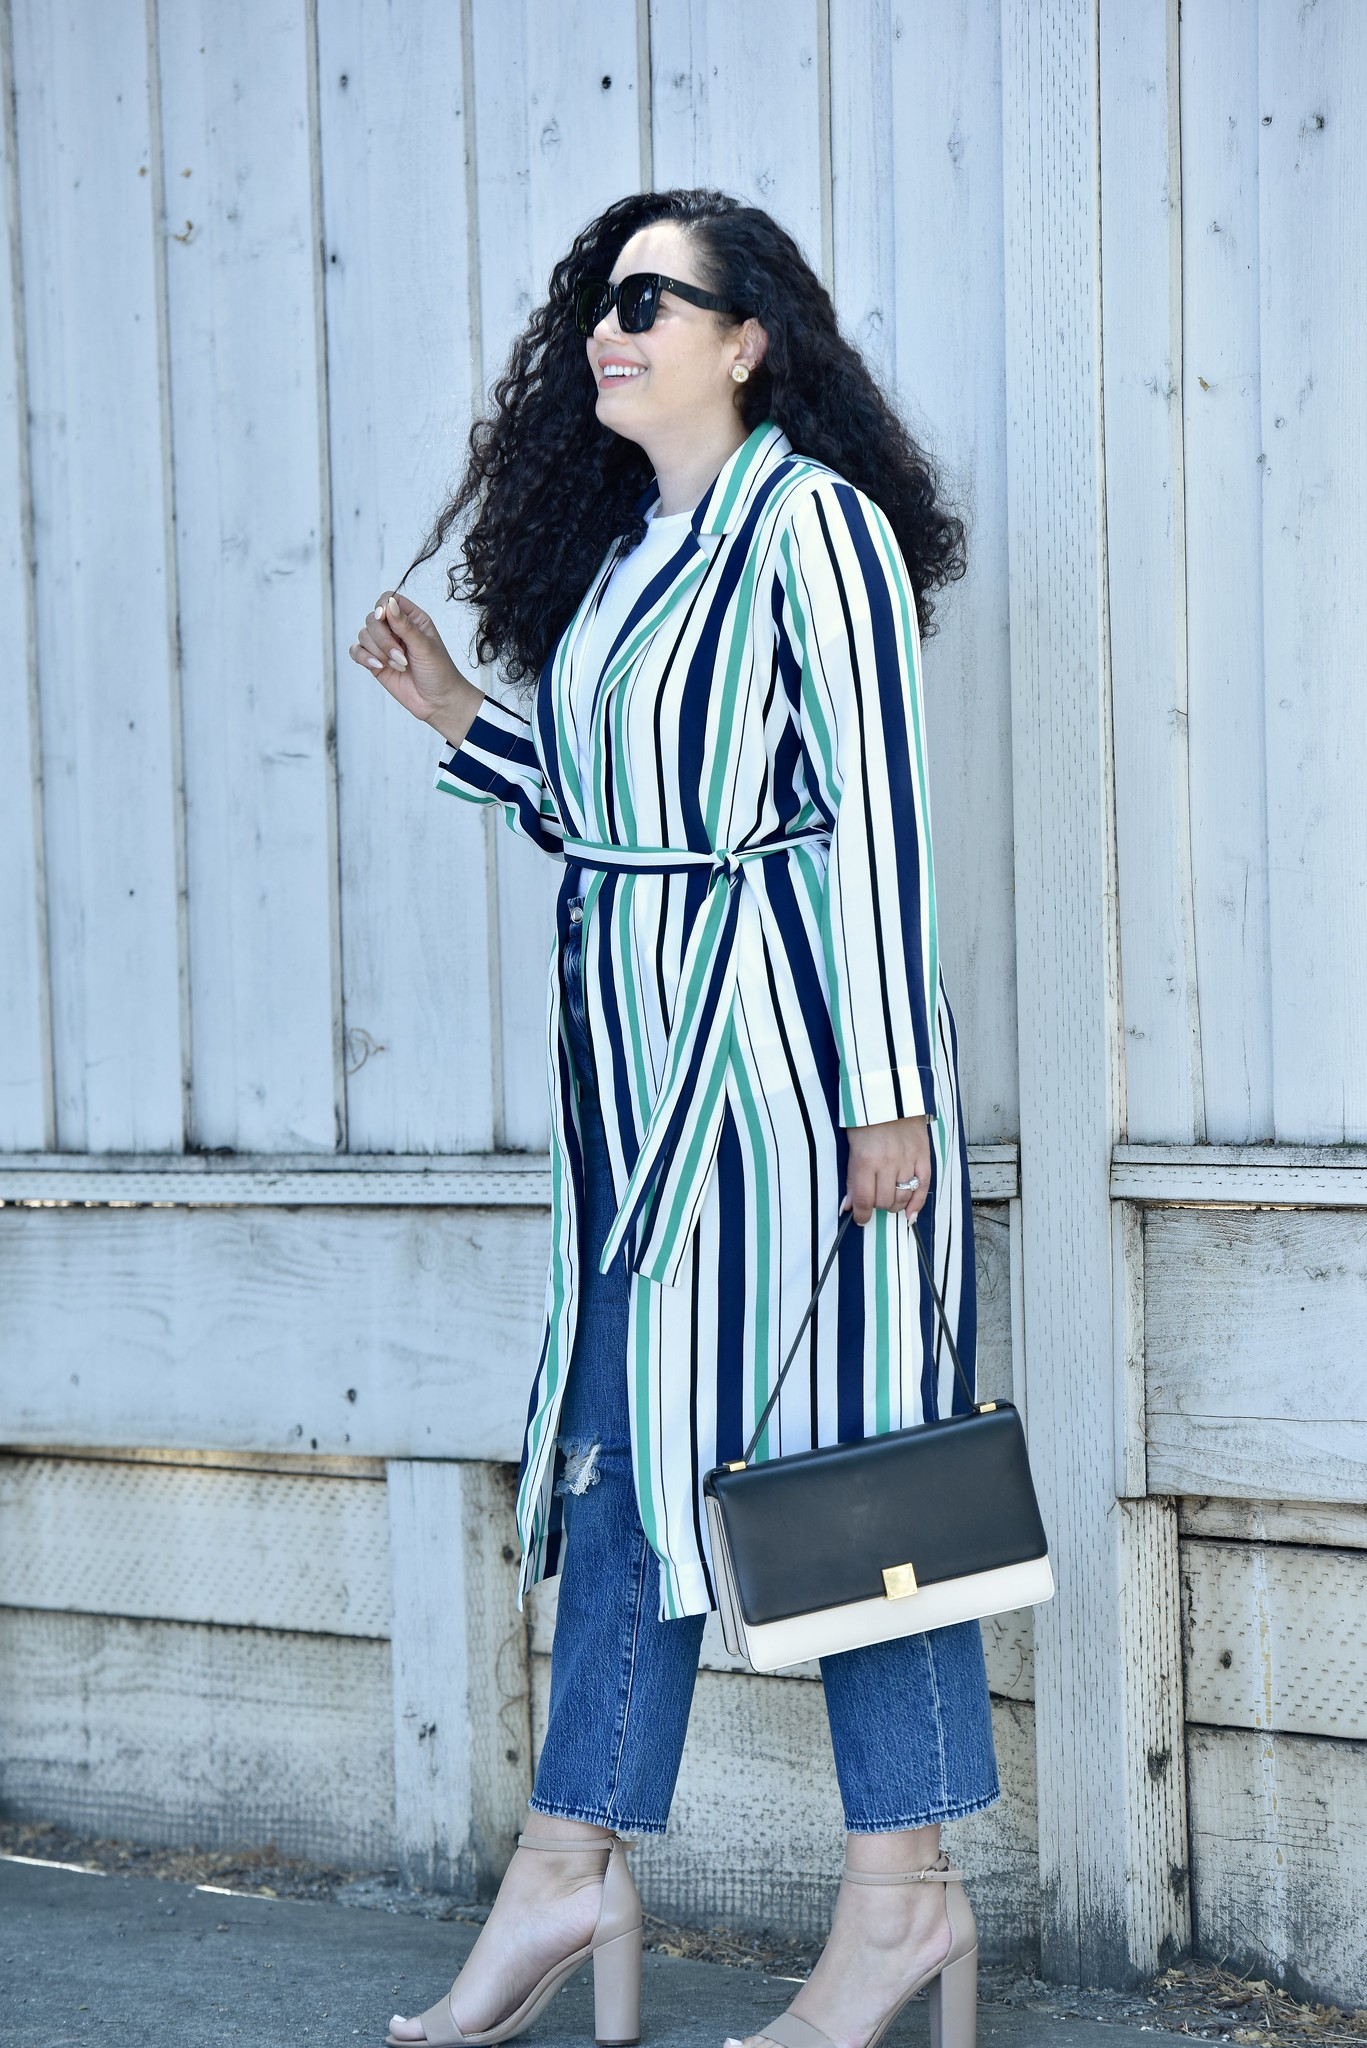 Wardrobe Must-Have- Soft, Summer Duster via @GirlWithCurves #boyfriend #jeans #trench #summer #stripes.